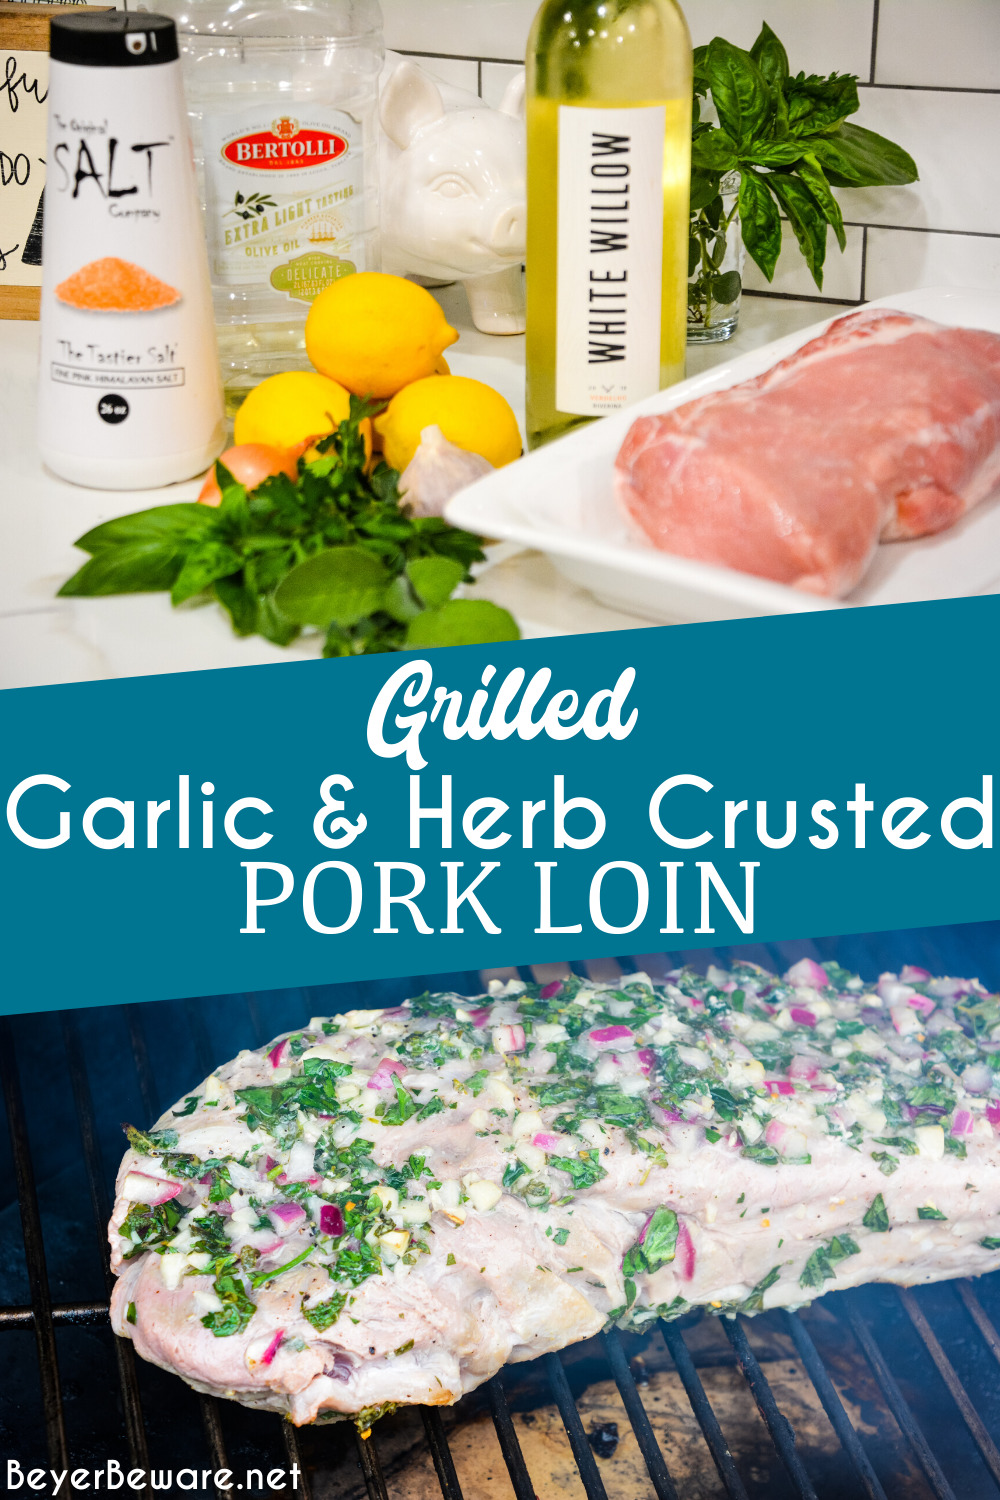 Garlic and Herb Crusted Grilled Pork Loin uses fresh herbs, garlic, and onions with simple wine, lemon juice, and oil marinade then grilled to juicy pork loin perfection. #grilling #Pork #Recipes